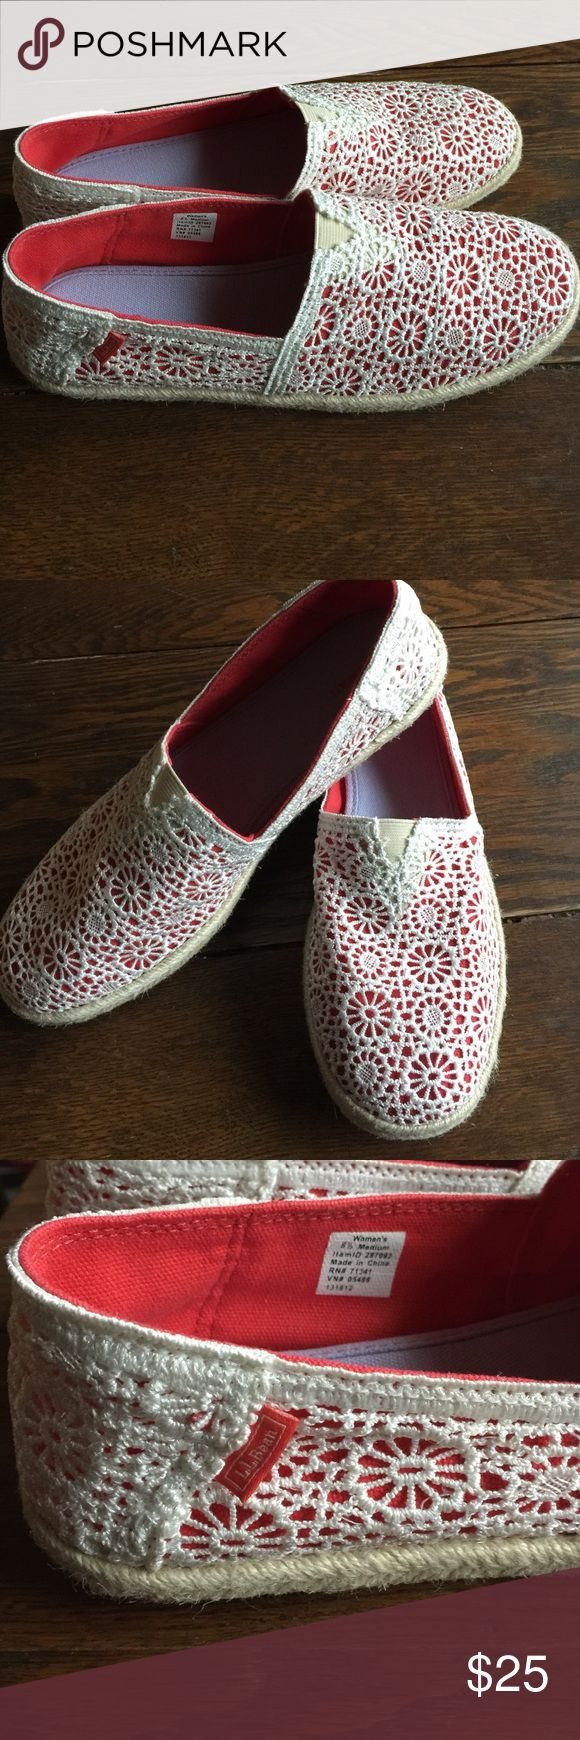 LL. BEAN lace/crochet slip on canvas shoes RARE🎉 New condition!! (No tag-no box) Never worn these Babies are rare for LL Bean!! 😍❤️️Women's size 8.5 medium ~Made very nicely these are a slip on canvas like shoe with a cream or Off white crochet like lace overlay with red background/underneath. A small red LL Bean tag on the outsides of each shoe, rubber soles and neat sole trims. Super awesome❤️️ RARE ❤️️LL Beans❤️️ L.L. Bean Shoes Flats & Loafers